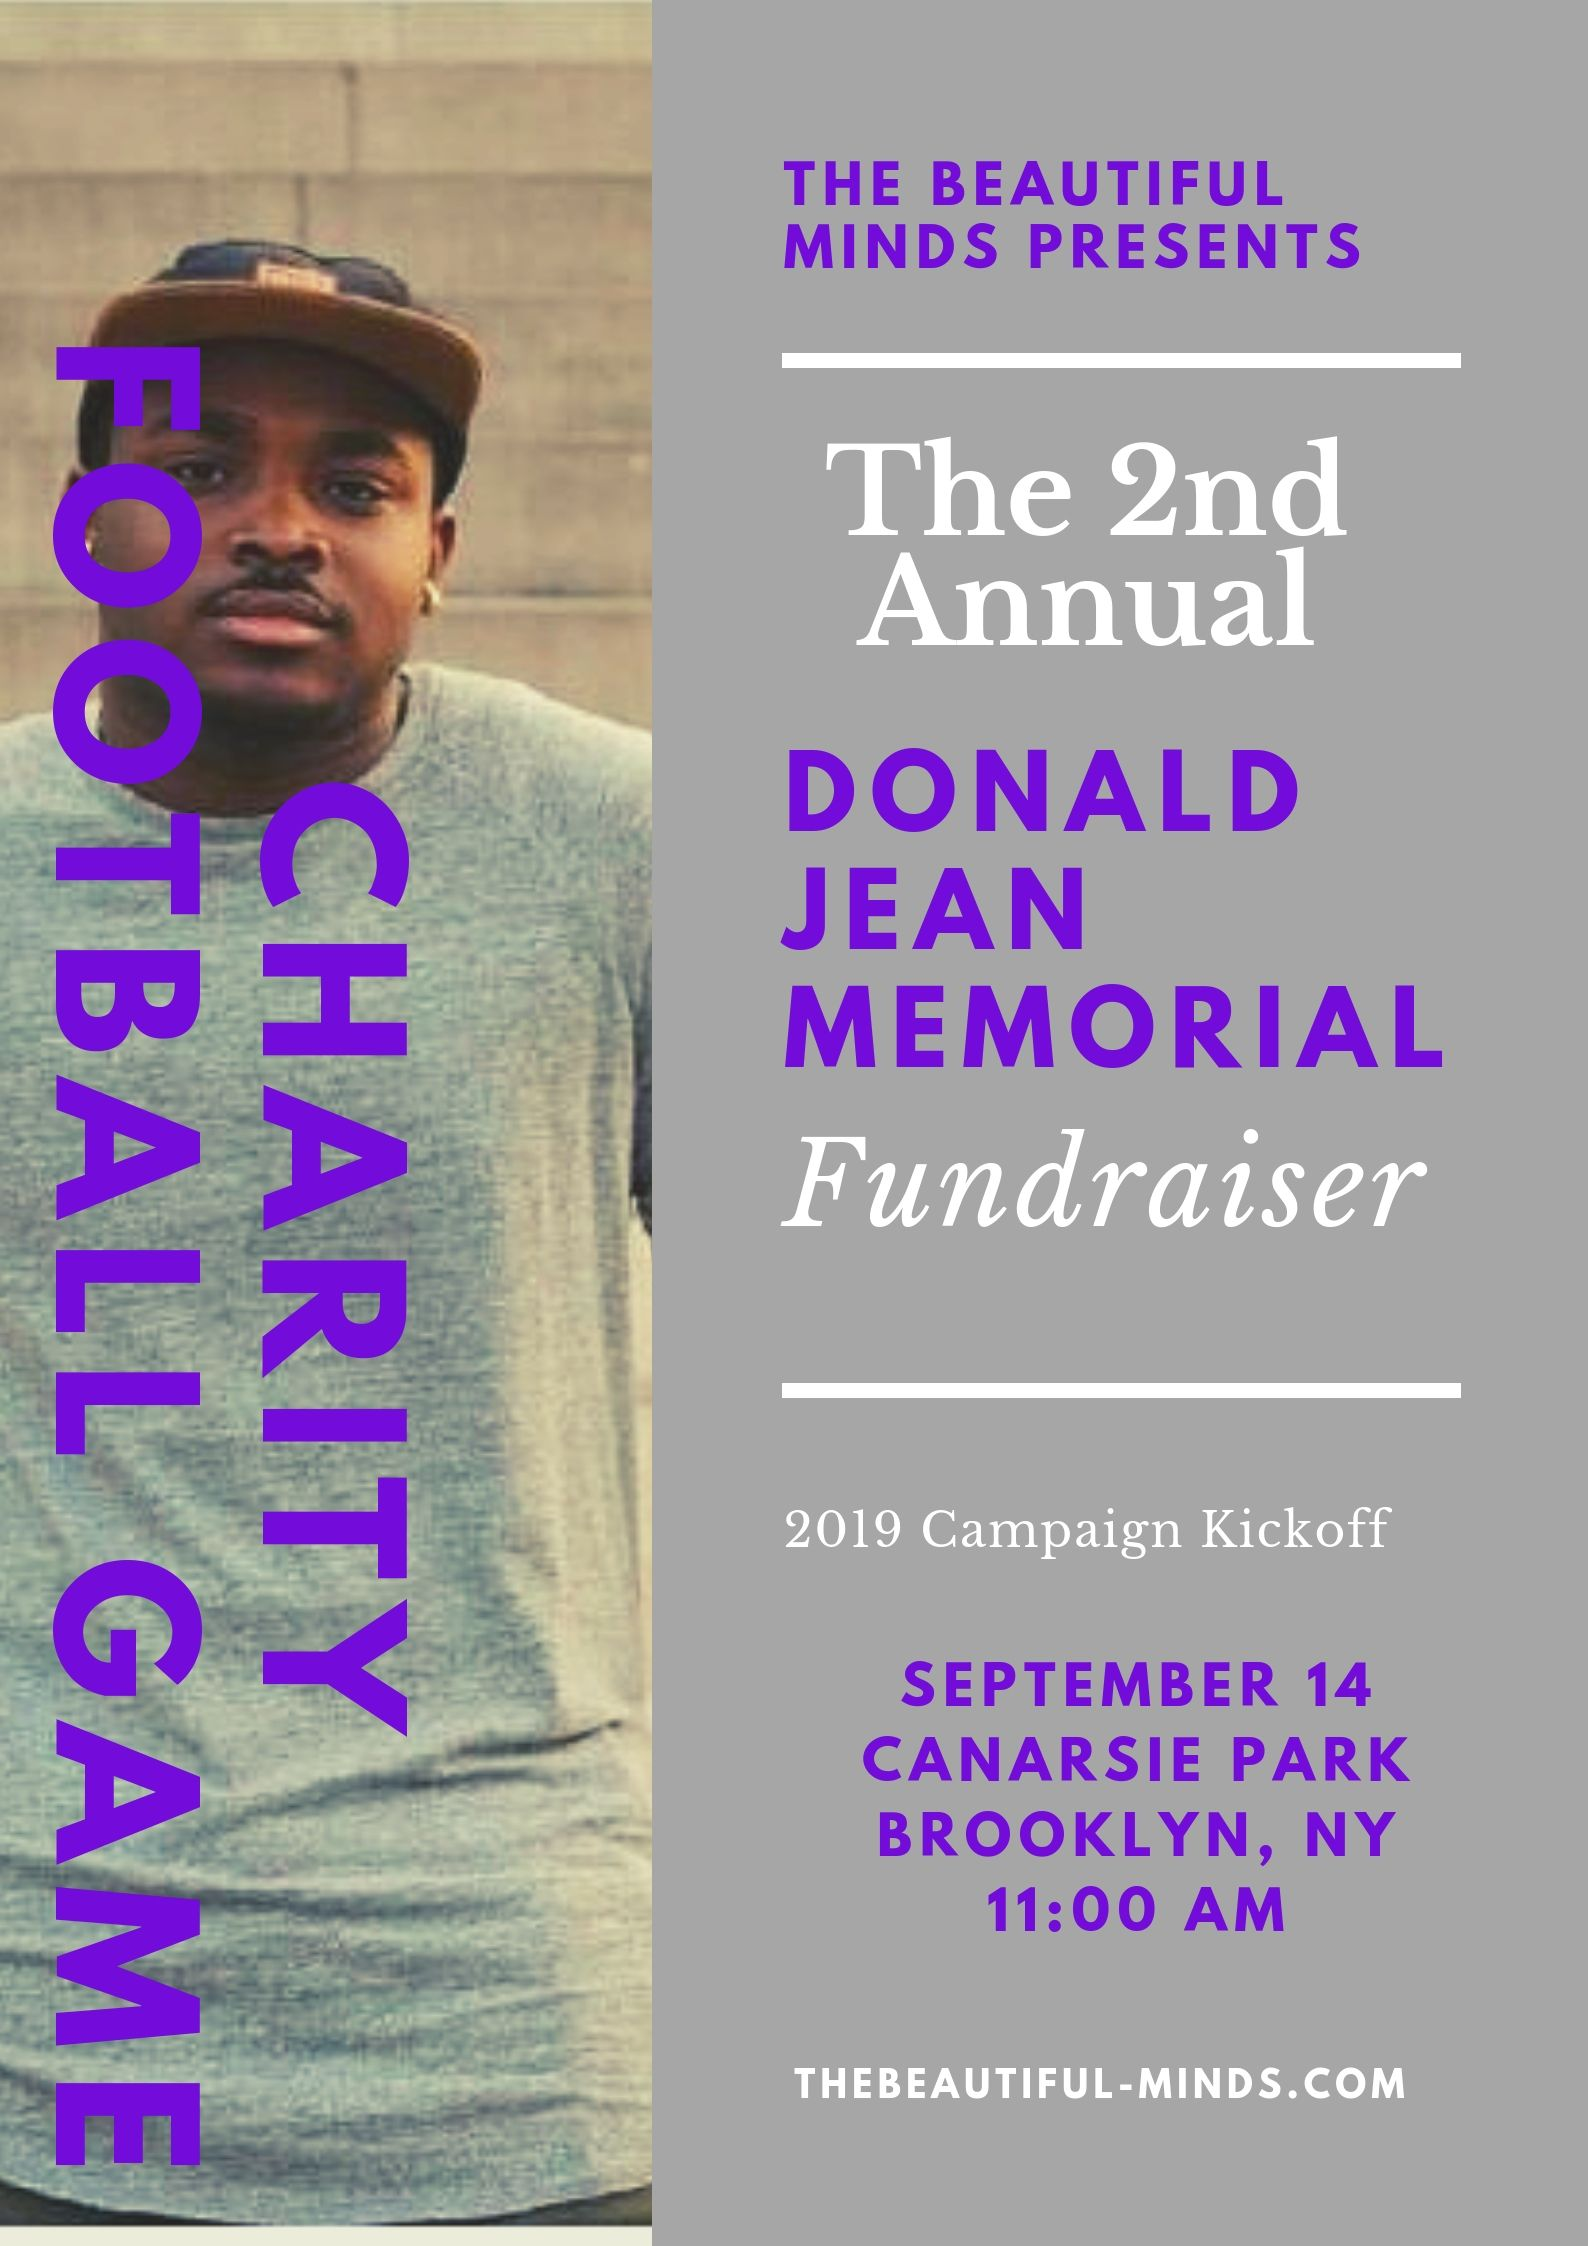 In Memory... - In honor of a friend who left us far too soon – The Beautiful Minds, with the blessing of the Jean Family, presents our fundraising initiative.2018 - Our very first year was a huge success. We raised over $2,000 in donations for St. Jude Children's Research Center.